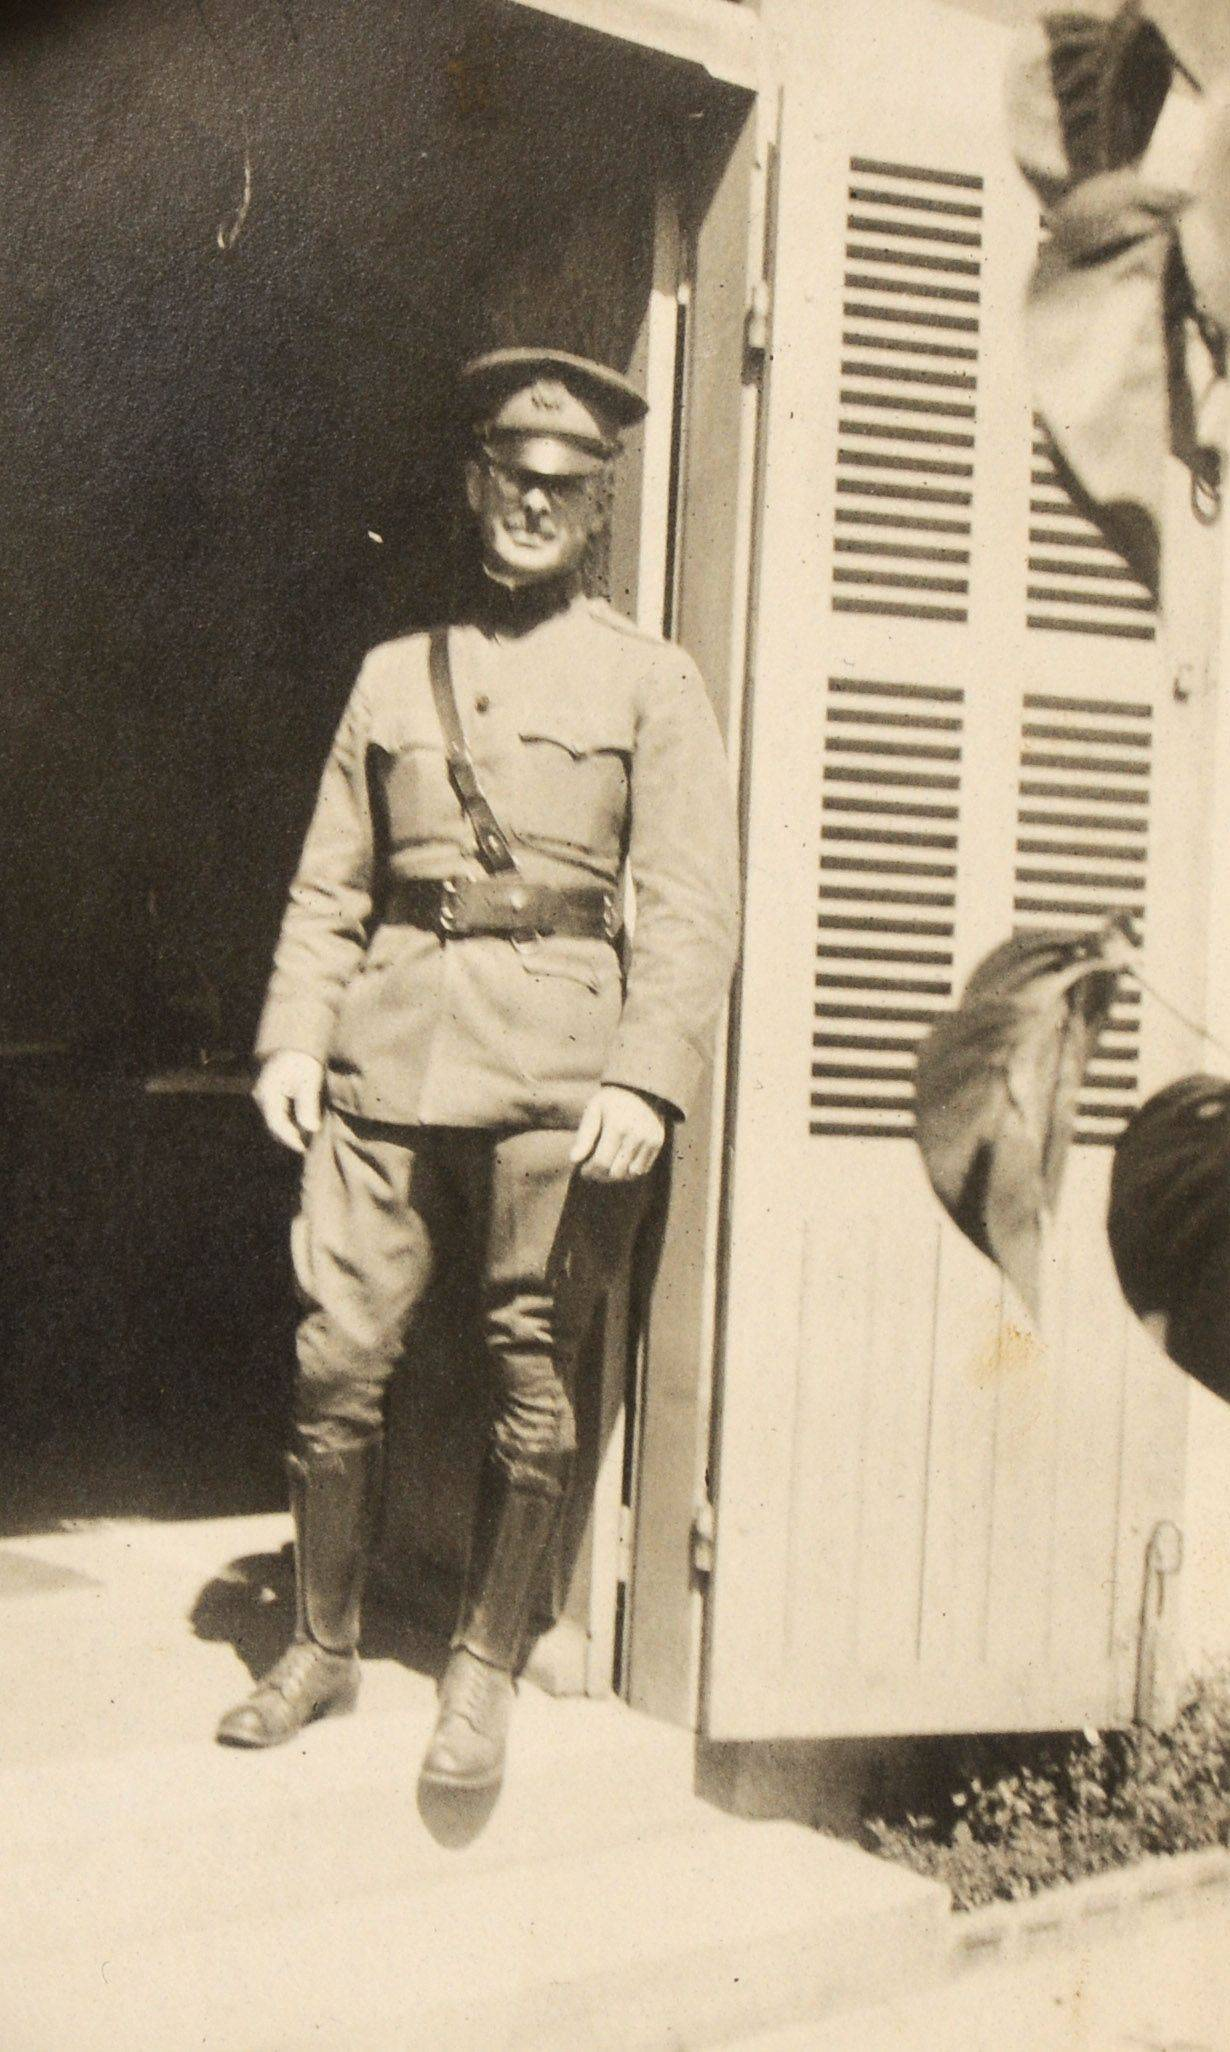 Jeff Bockman's grandfather, John Gault Stevenson, is shown in this photo taken in France during World War I.